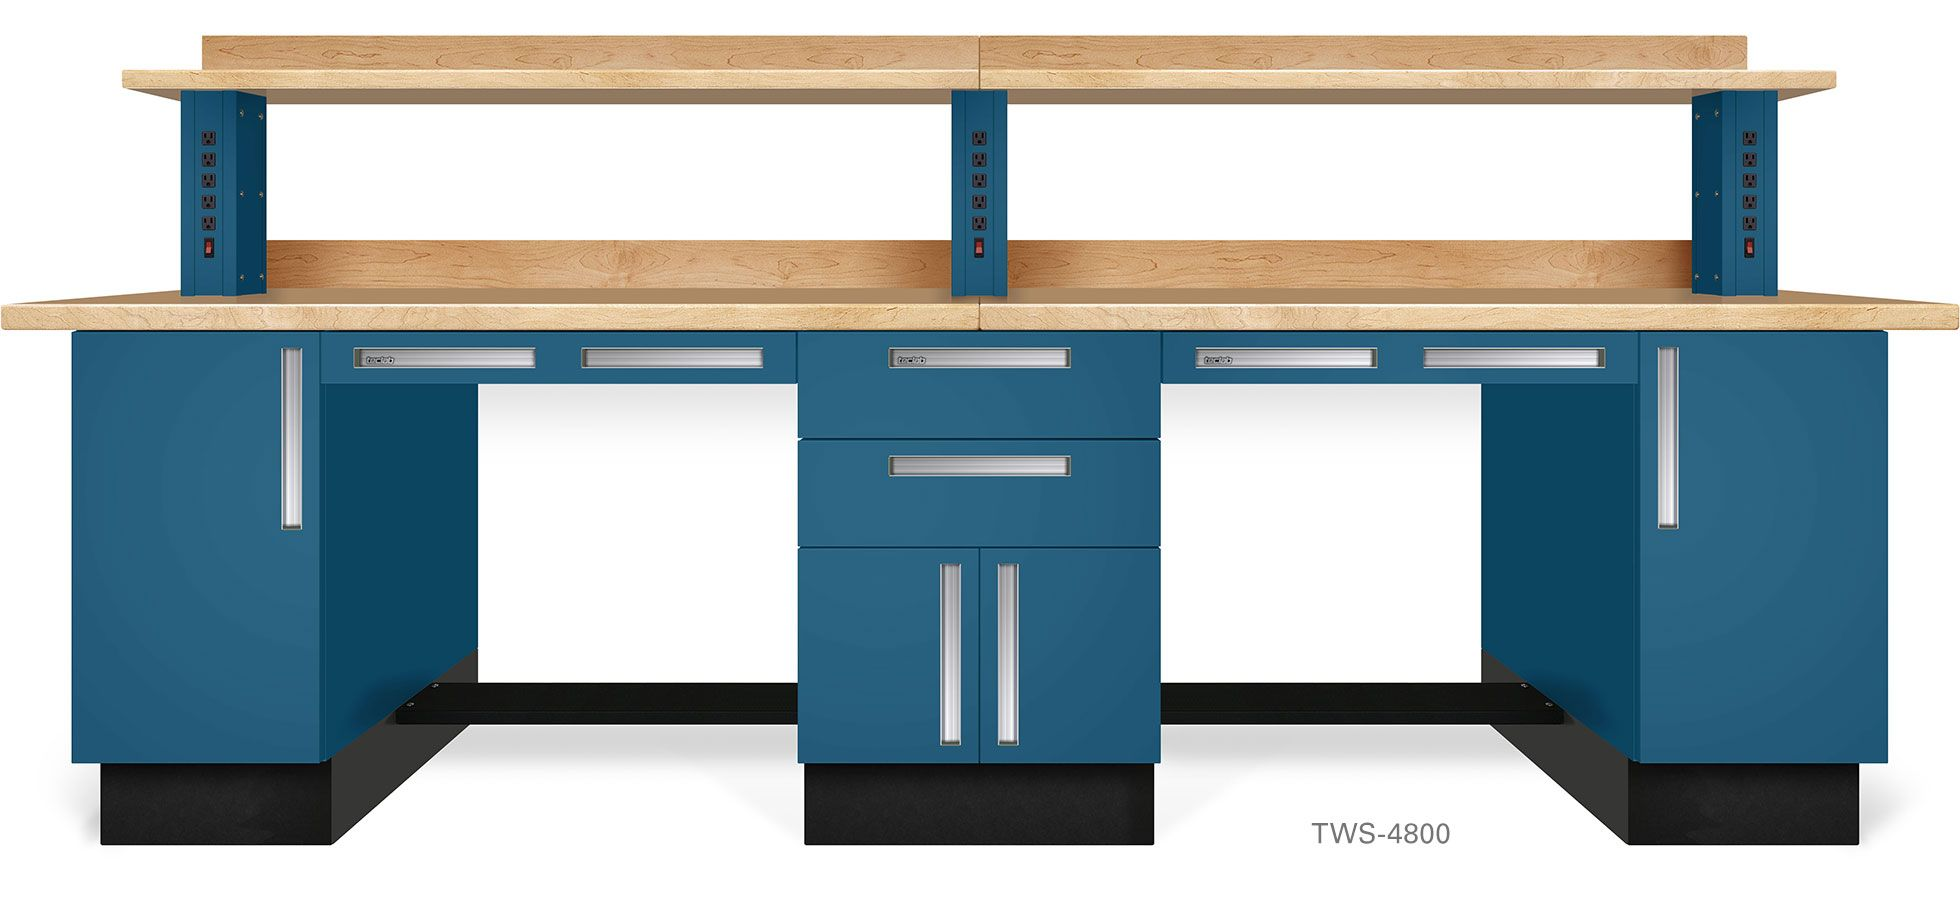 for workbenches ideas renocompare plans bench work image diy garage shelving workbench custom